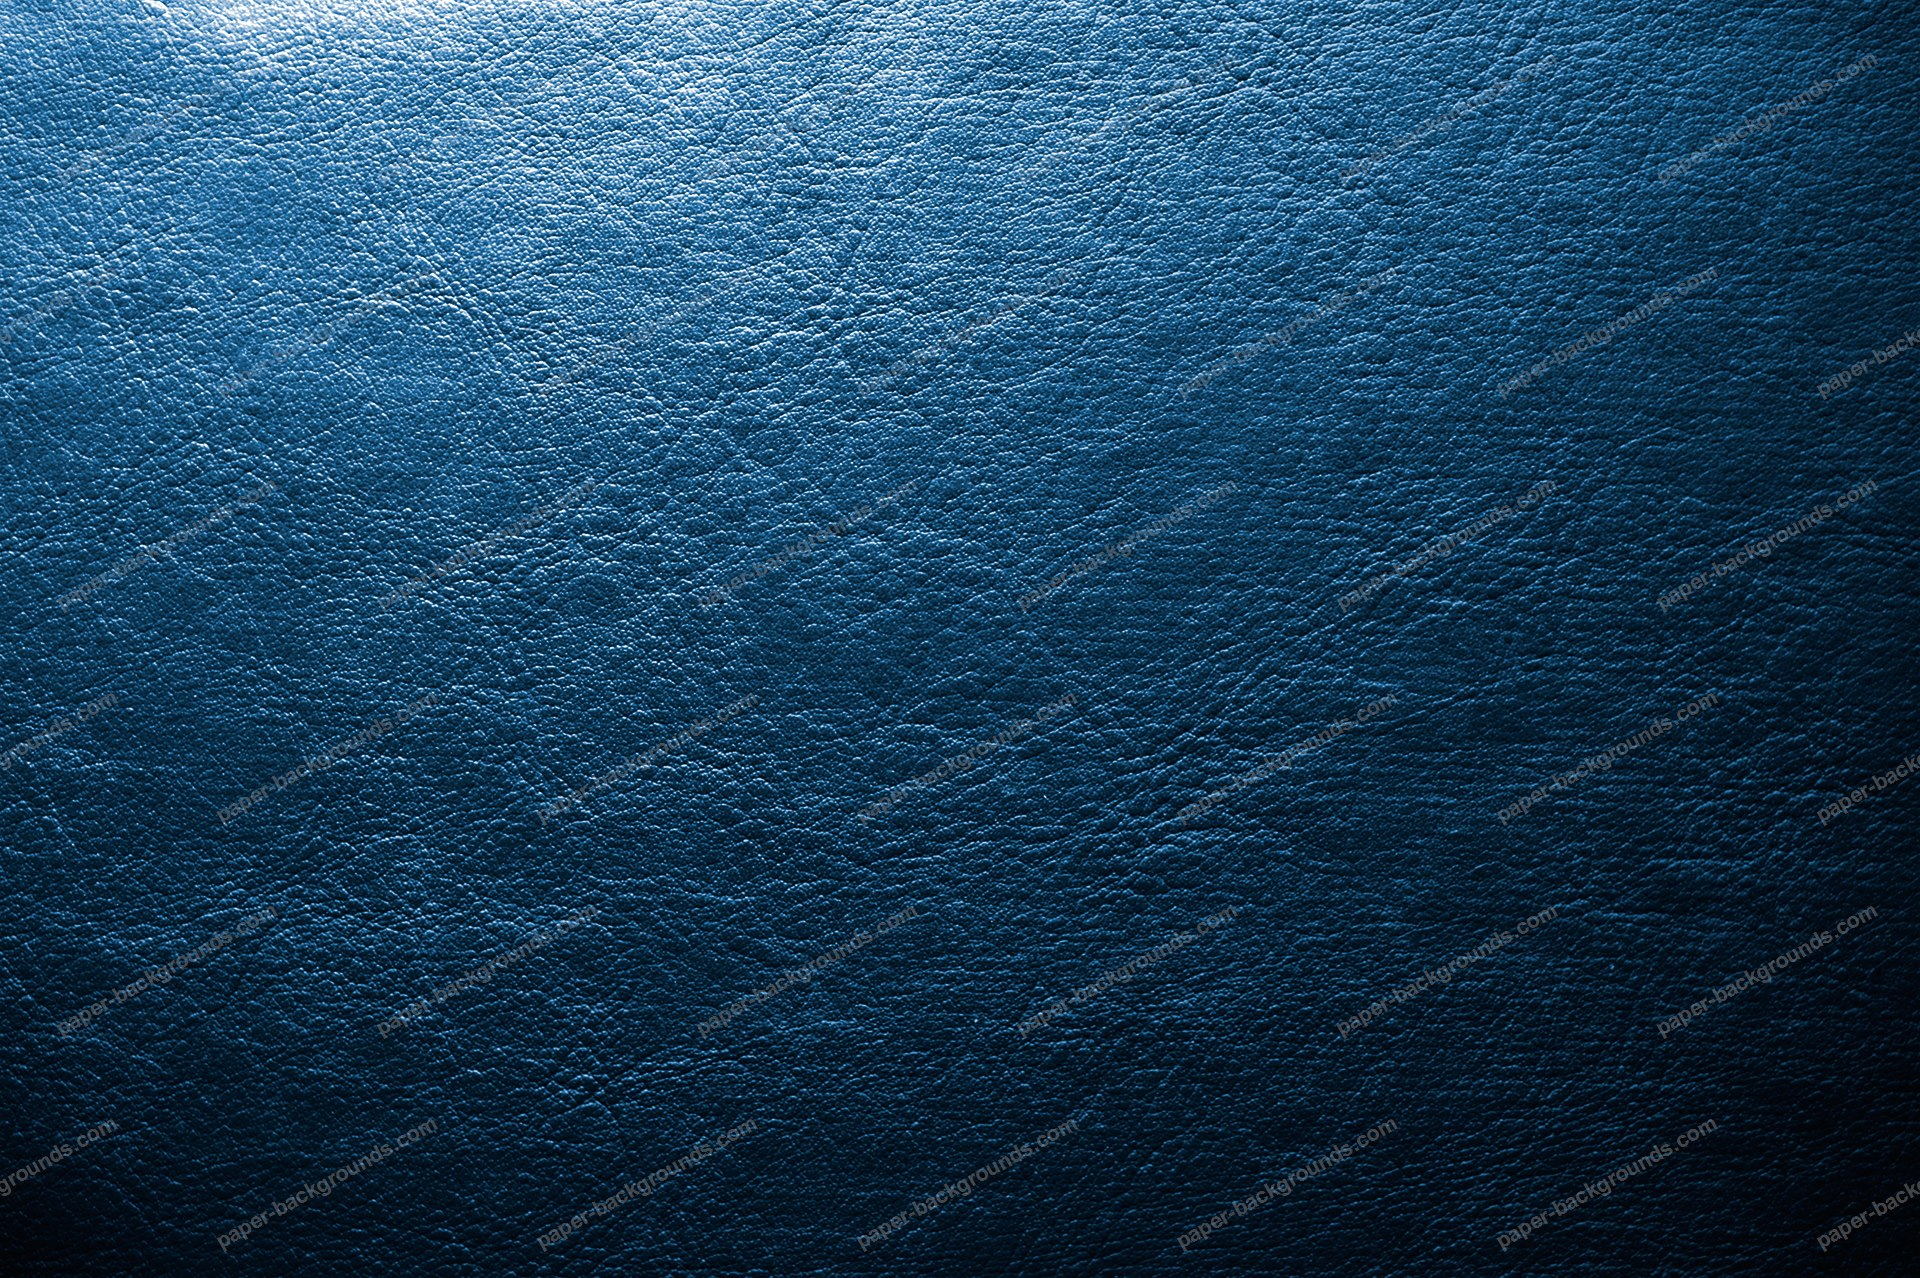 blue-leather-background-texture-hd